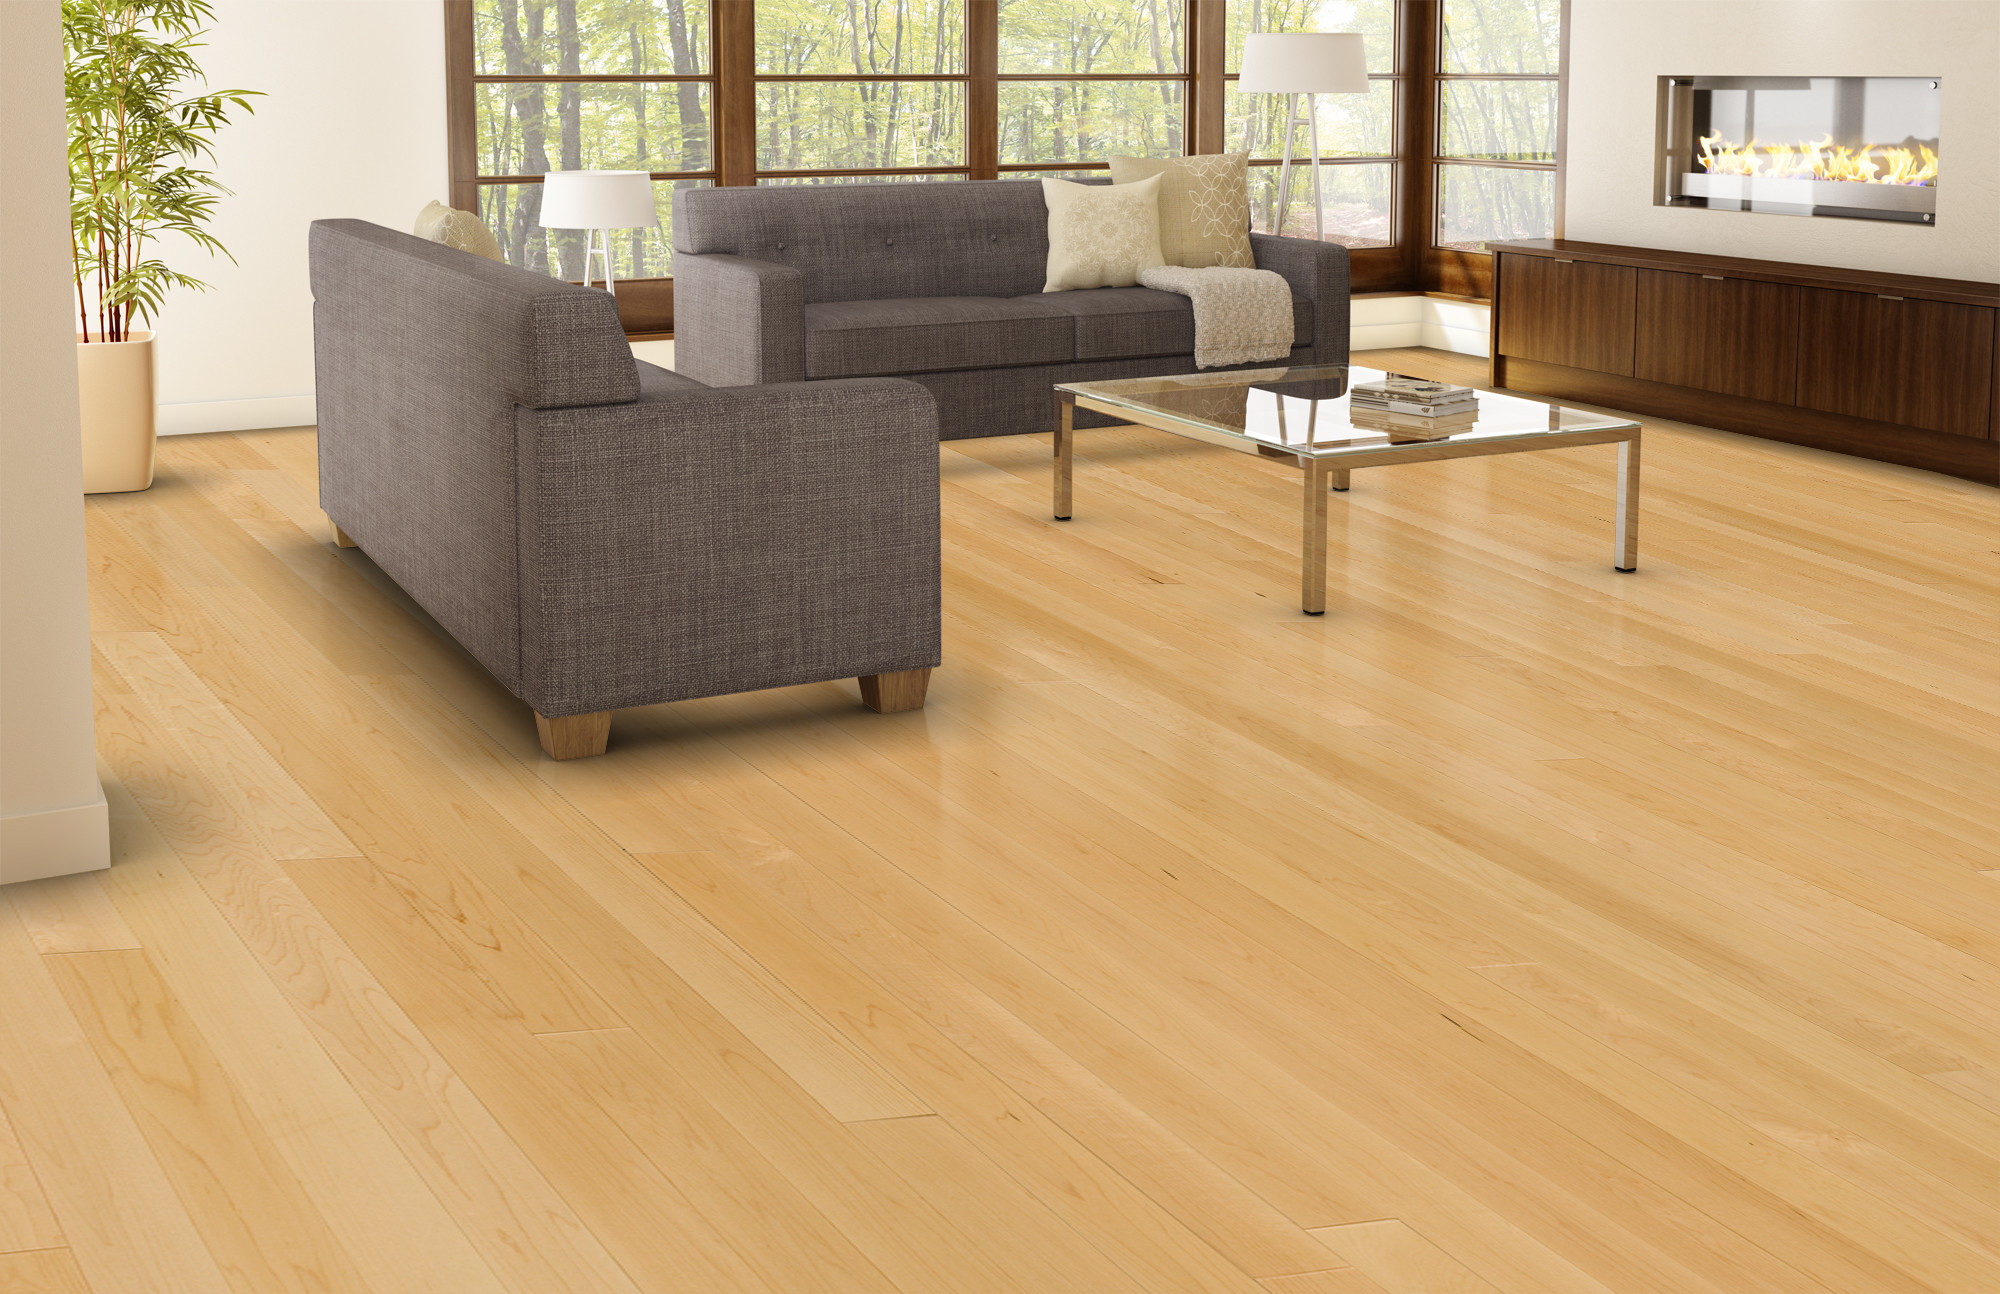 Hardwood Floor Refinishing Downers Grove Il Of Hardwood Floor Profiles Maple Plus Hardwood Flooring Regarding 1454527982946